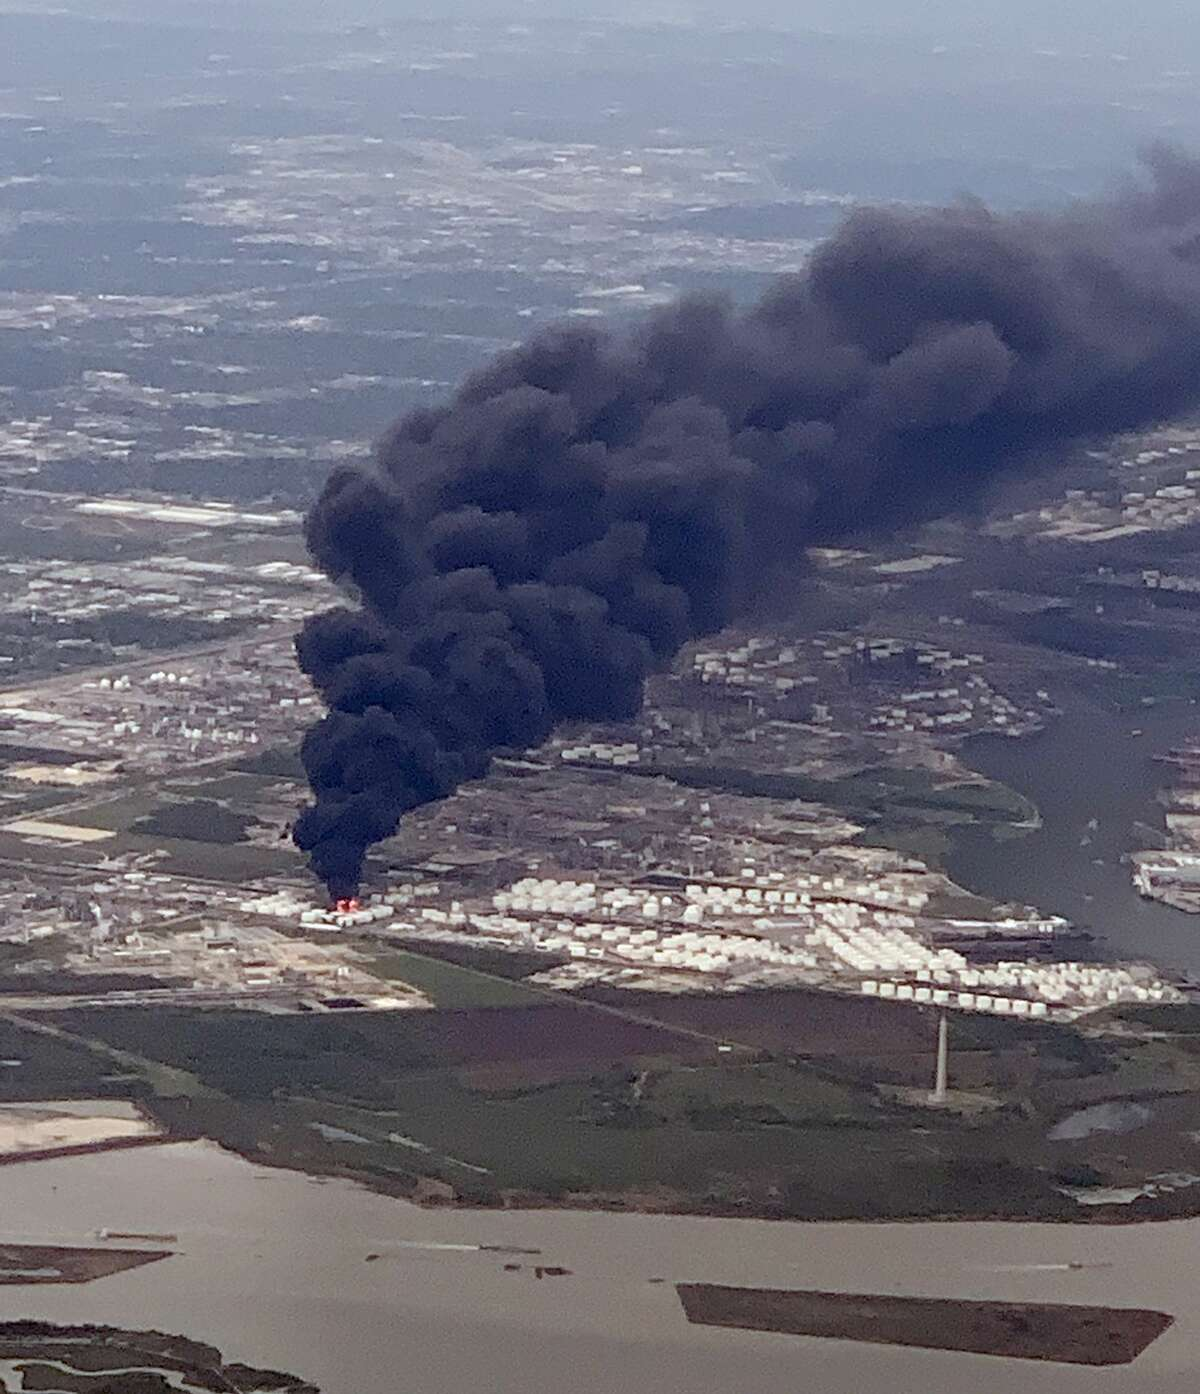 Photo of a petrochemical fire at a Deer Park plant taken from United flight 1901 during it's descent into IAH on Monday, March 18, 2019.